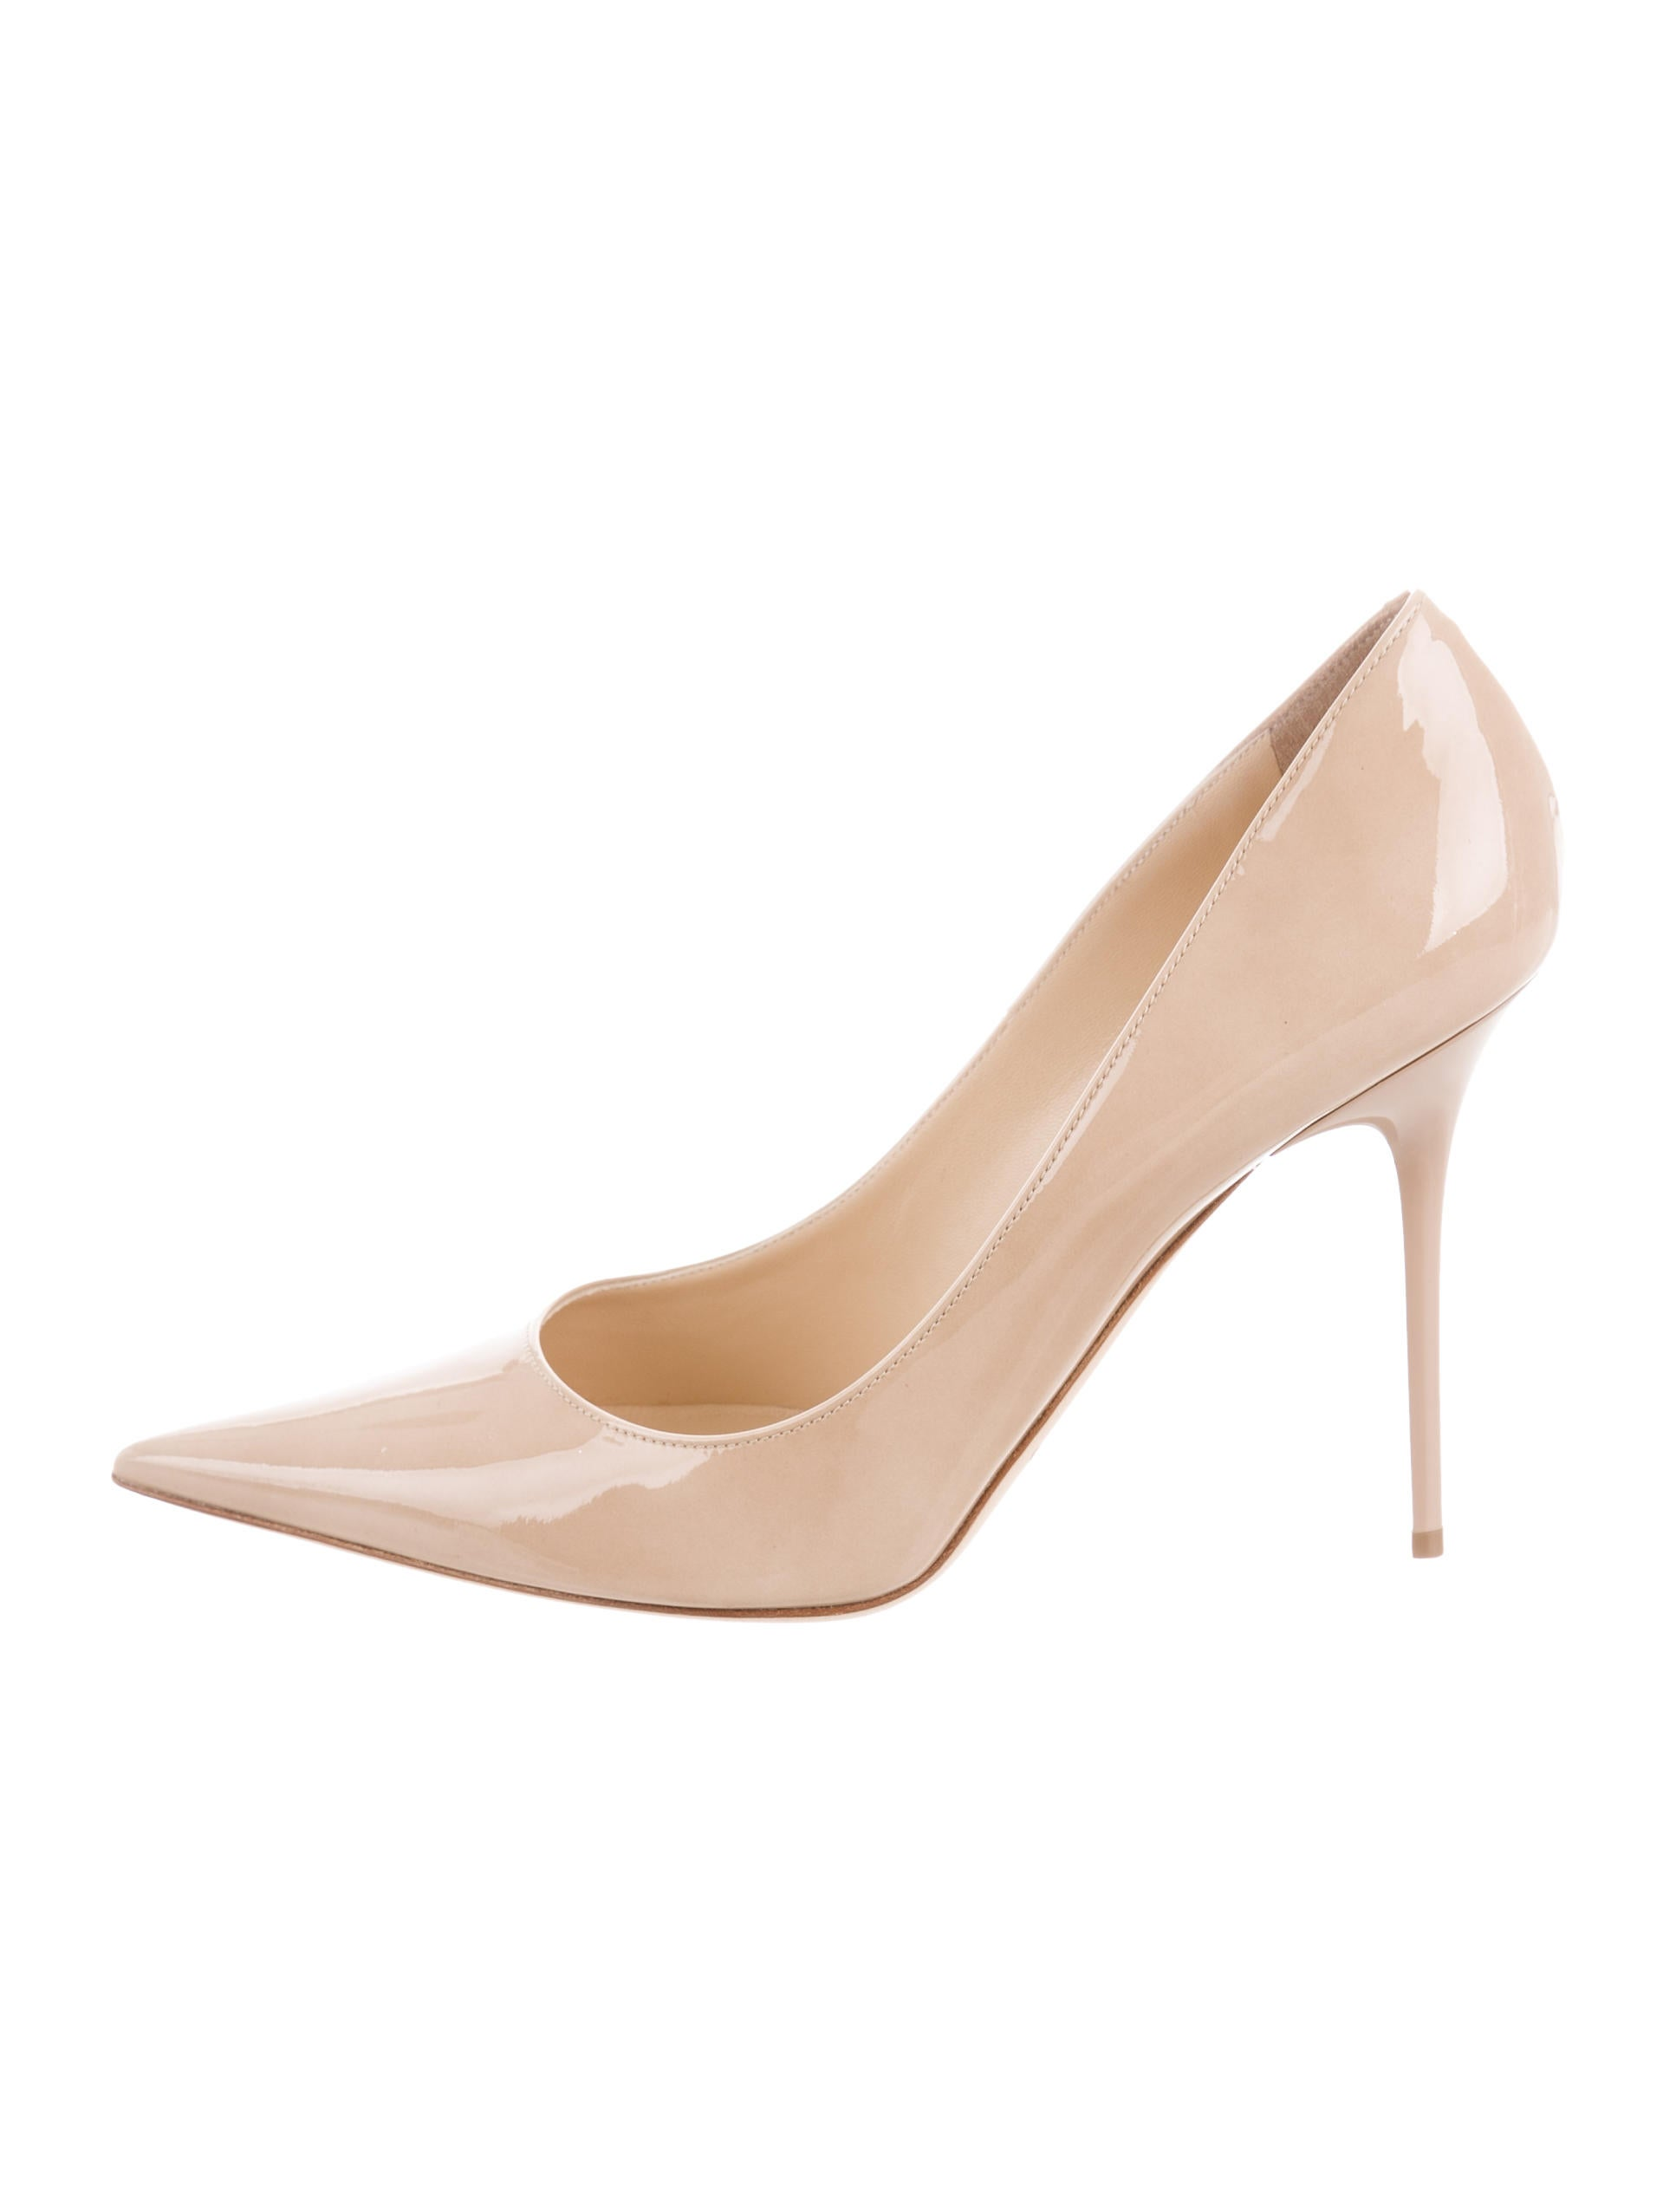 outlet discount Jimmy Choo Abel Pointed-Toe Pumps w/ Tags buy cheap big discount new styles for sale cheap sale best seller free shipping with credit card NstdBM